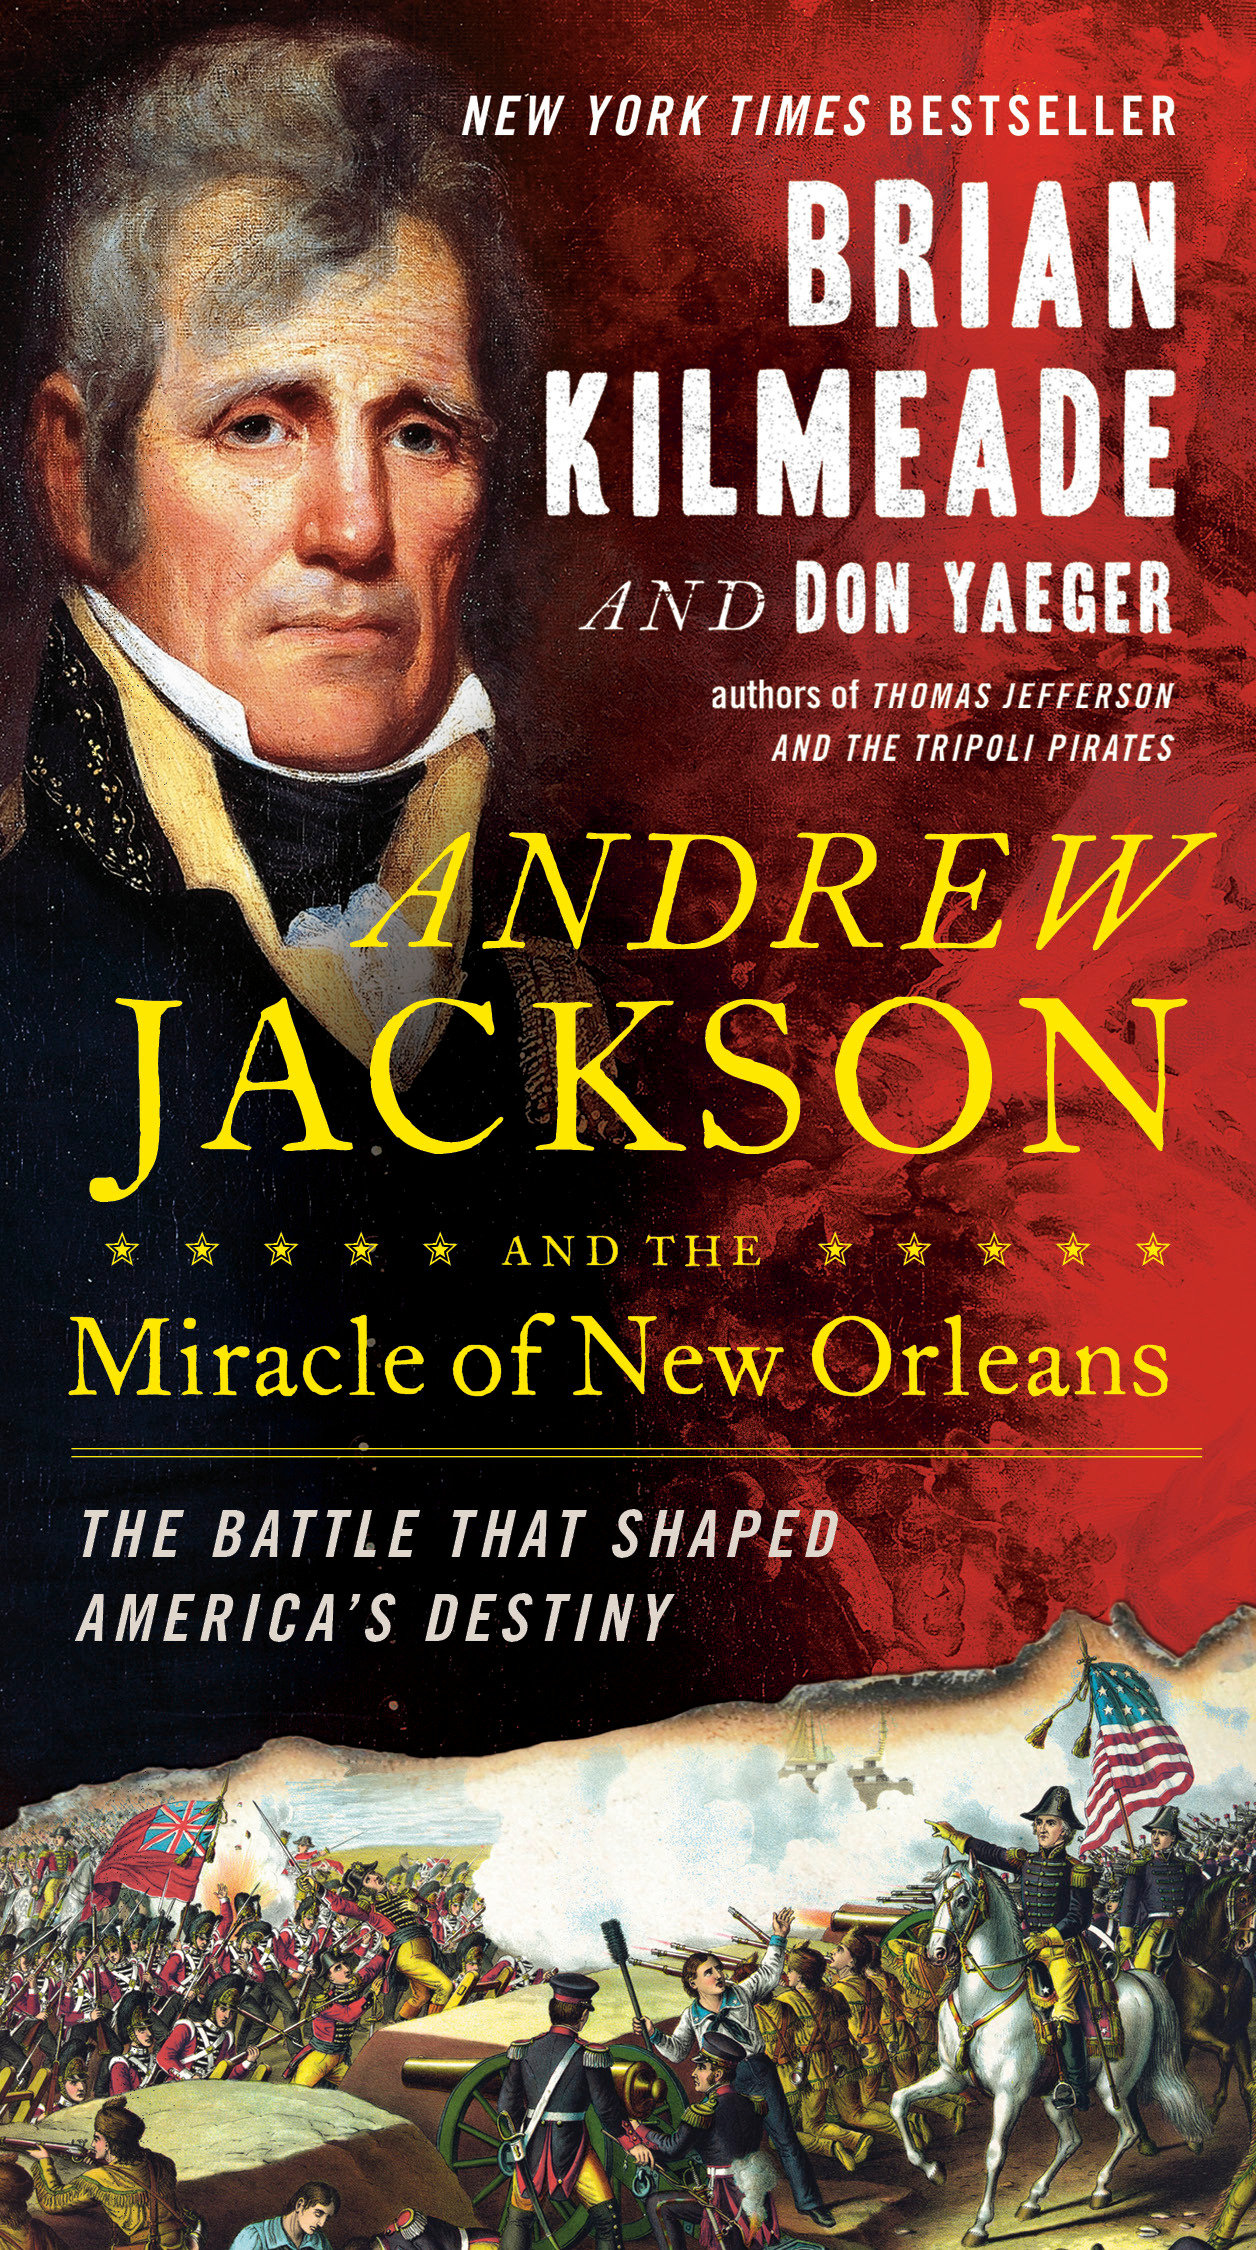 Andrew Jackson and the Miracle of New Orleans The Battle That Shaped America's Destiny